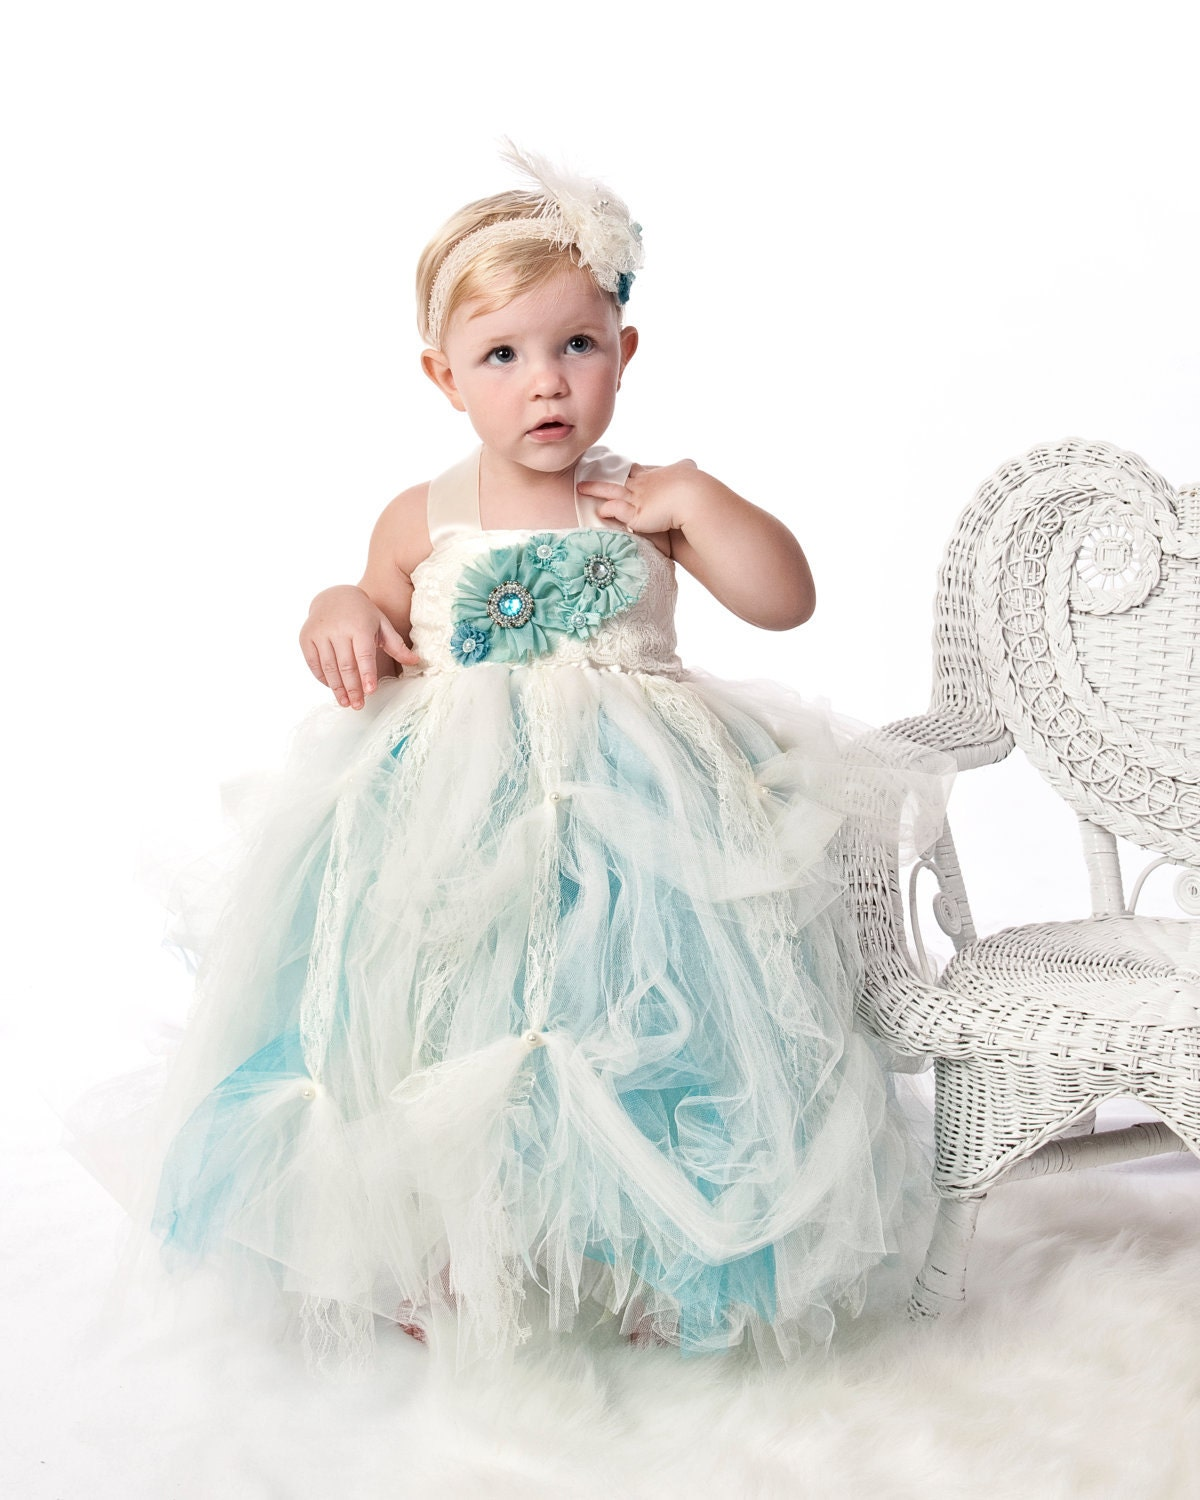 Summer pink tulle tutu wedding party baby girls dress for 1 months -8 years old. Hotone Newborn Toddler Baby Girls Floral Dress Party Ball Gown Lace Tutu Formal Dresses Sundress. by Hotone. $ - $ $ 15 $ 16 99 Prime. FREE Shipping on .